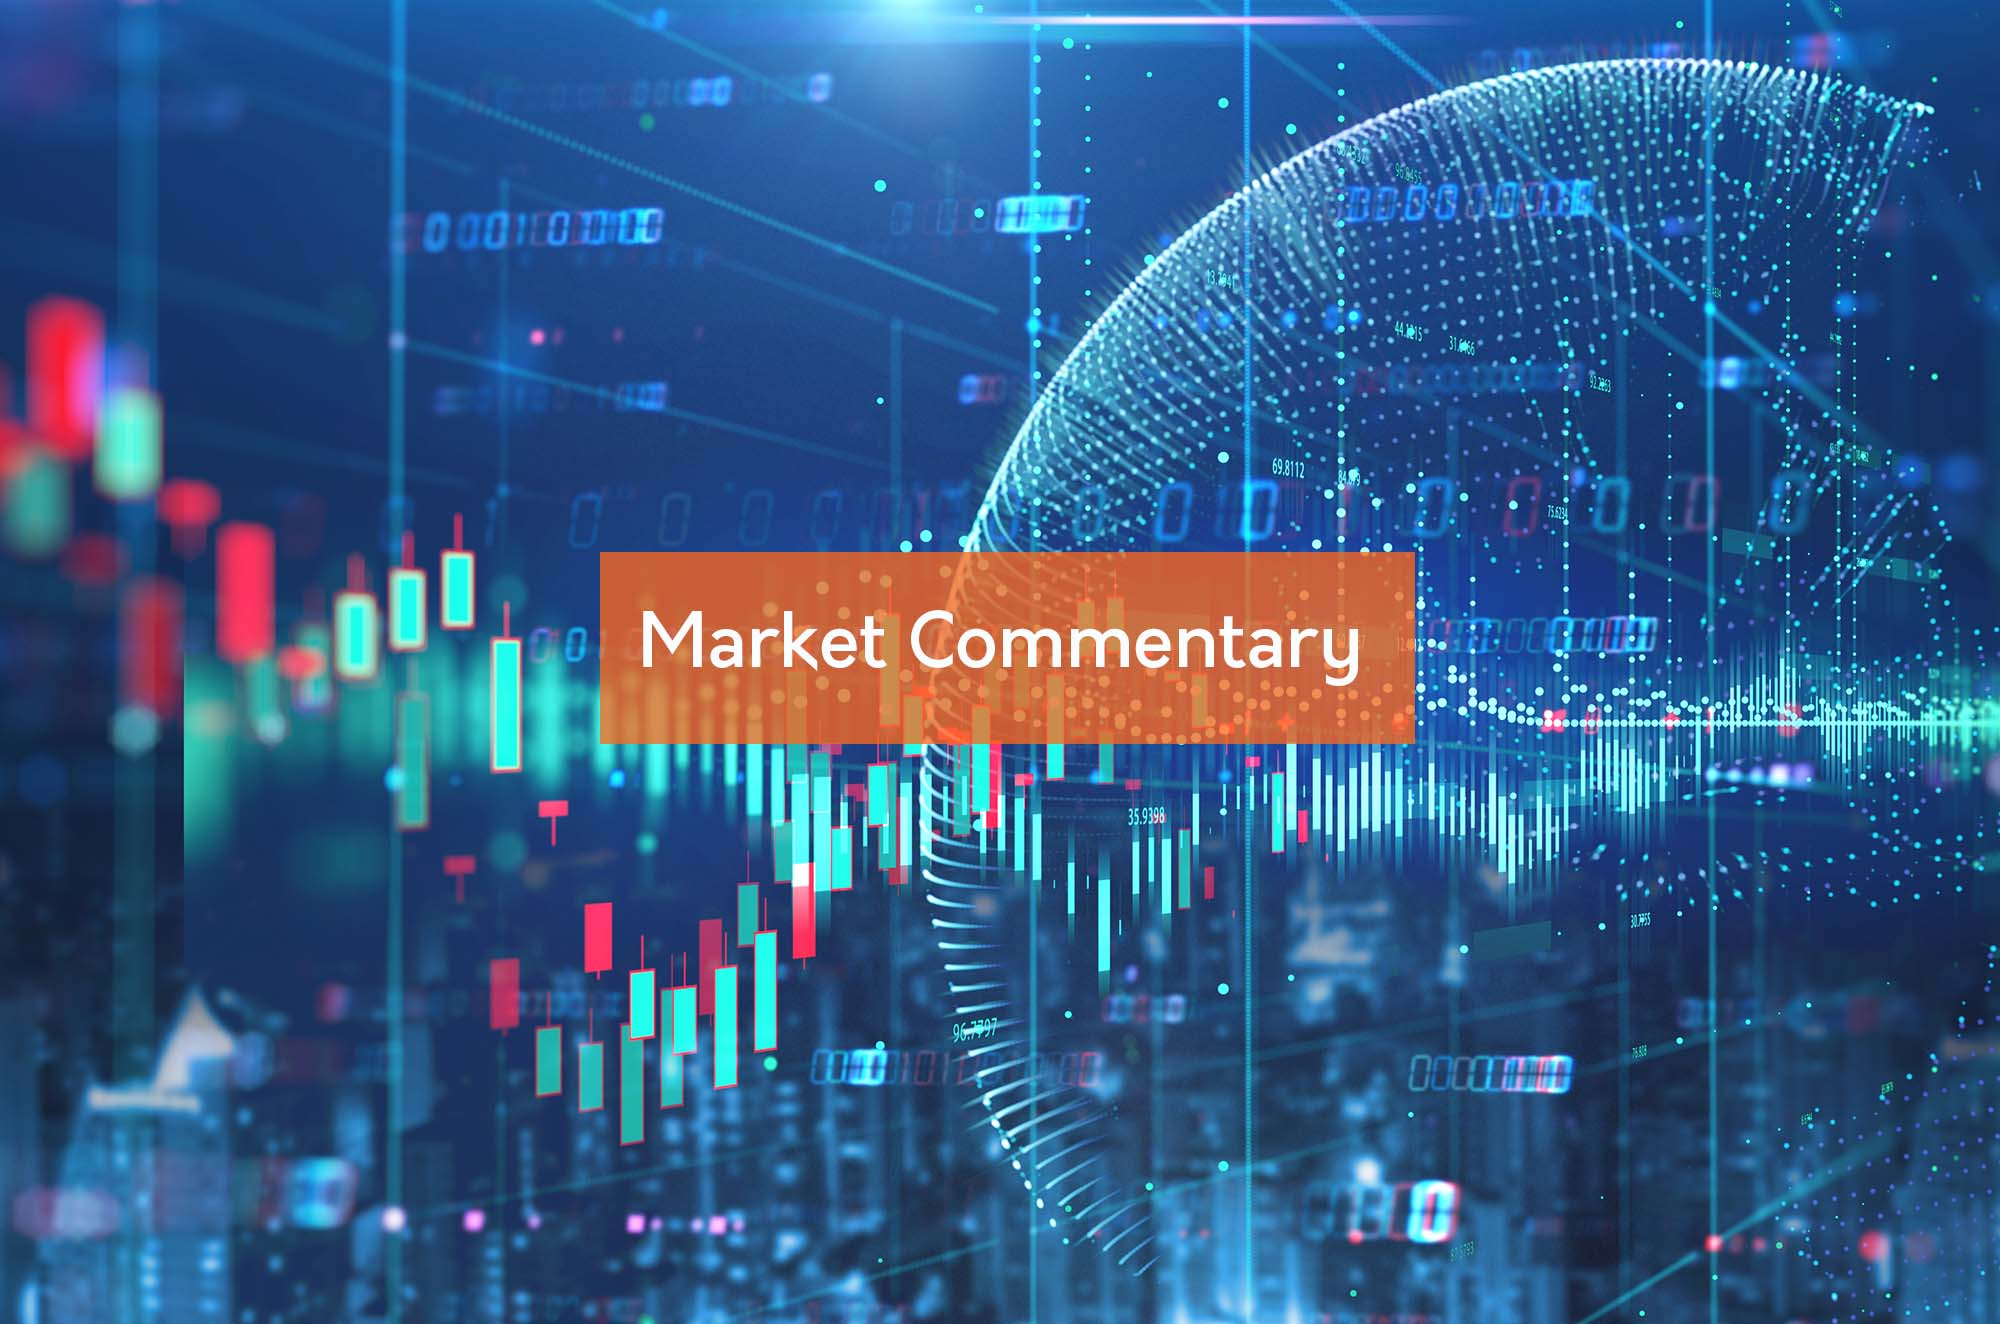 Market performance commentary